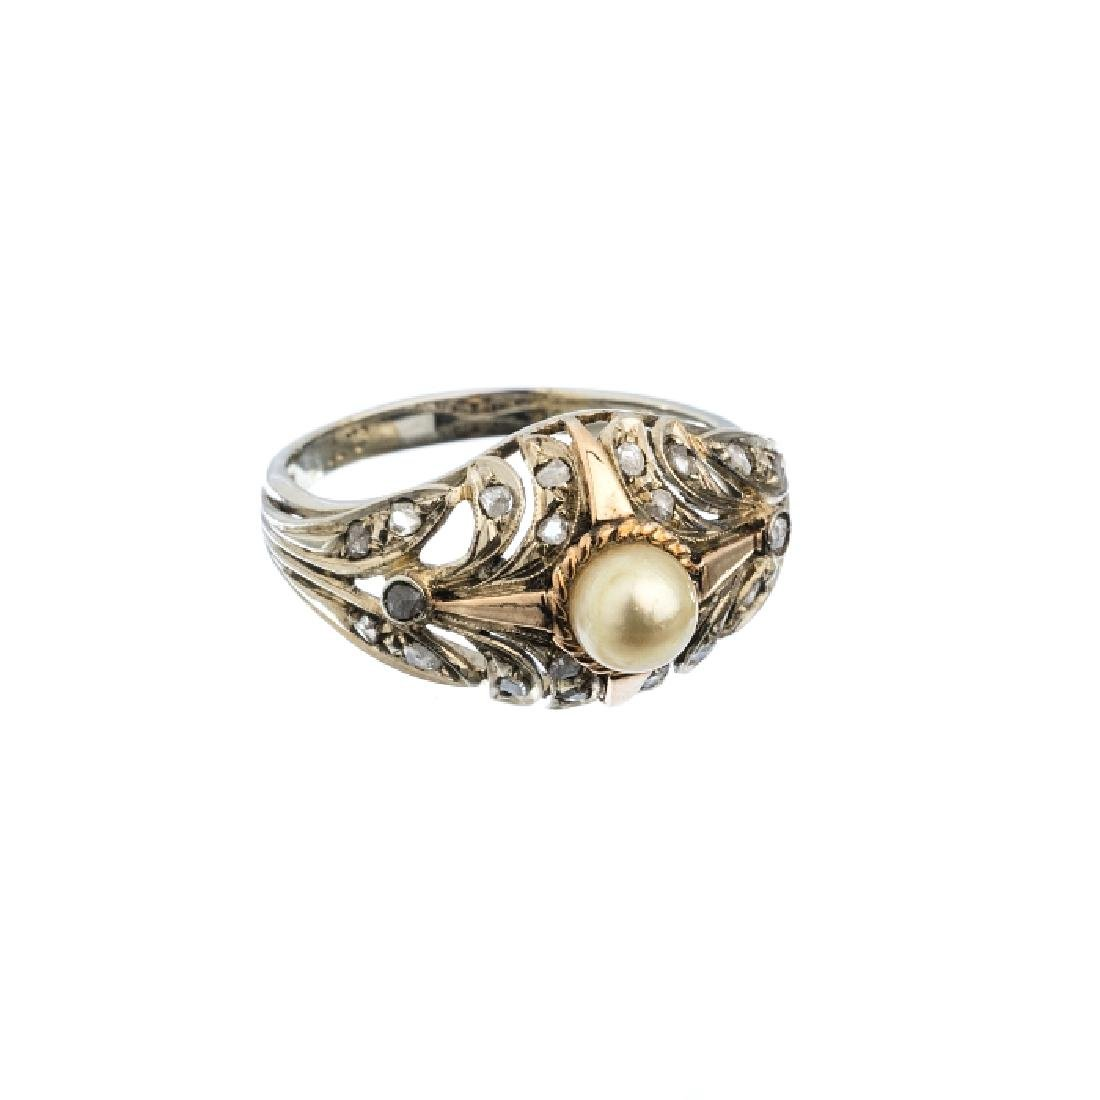 Gold ring with diamonds and pearls